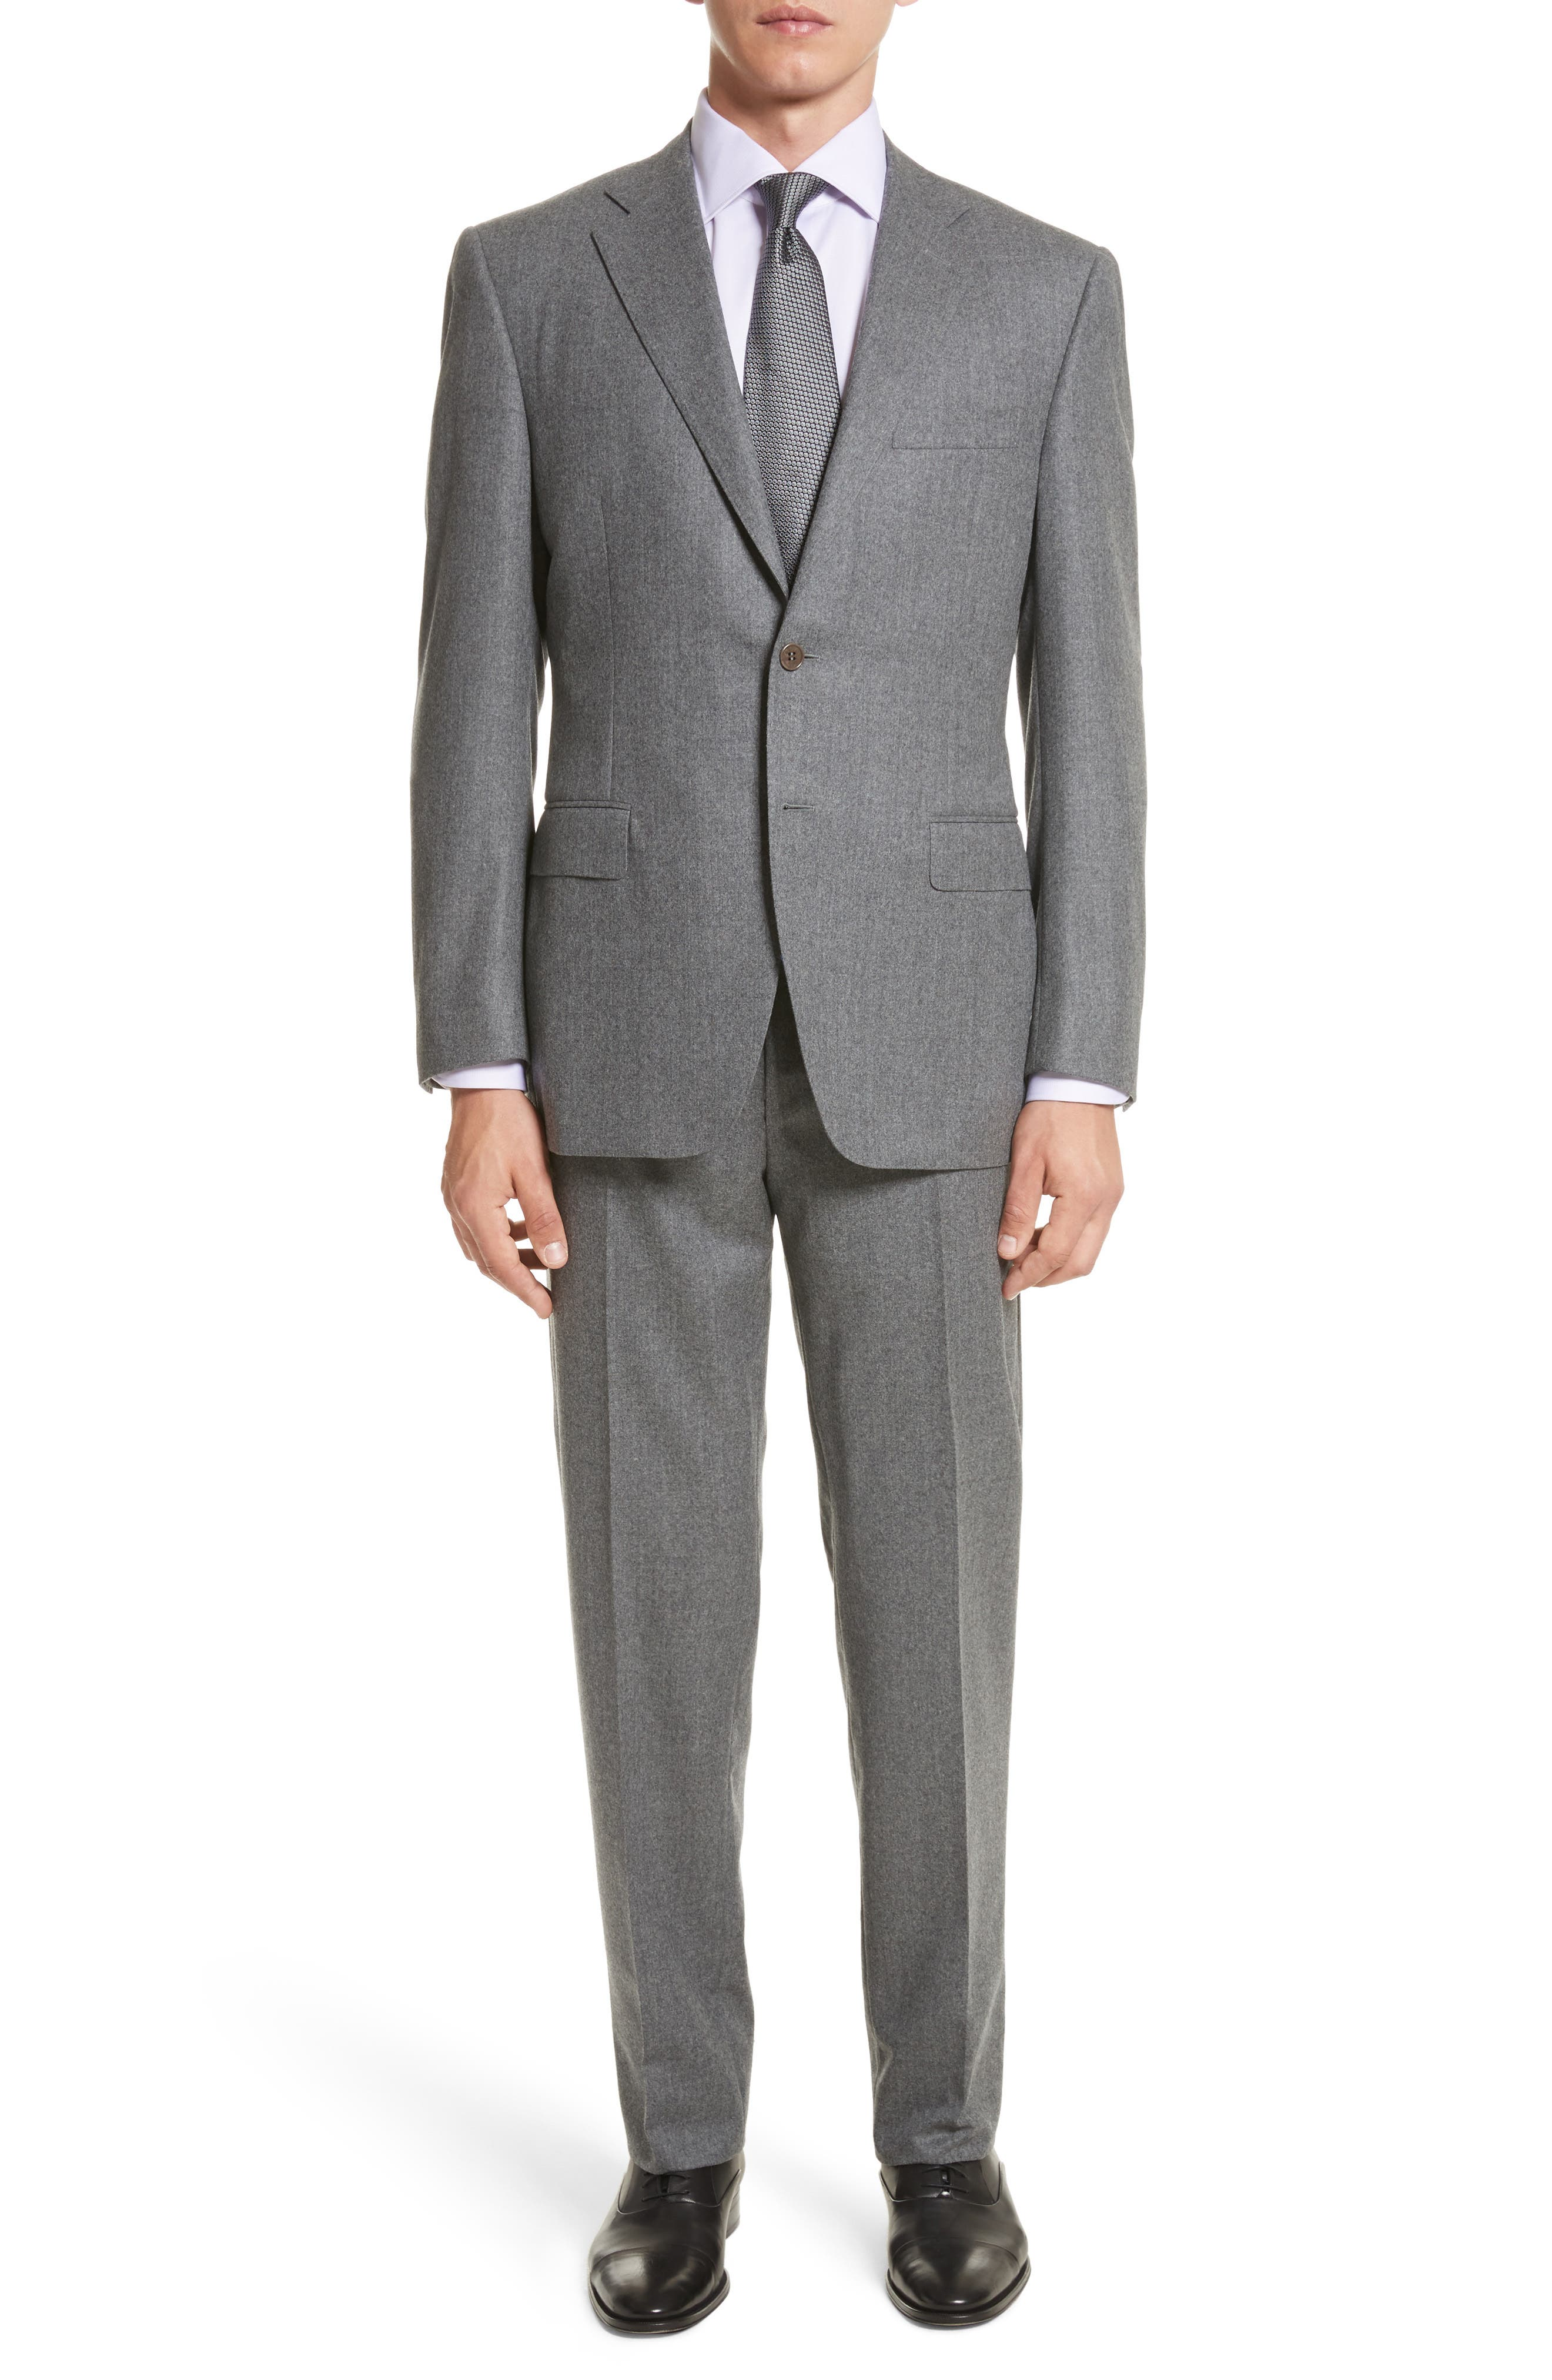 Alternate Image 1 Selected - Canali Classic Fit Solid Wool Suit